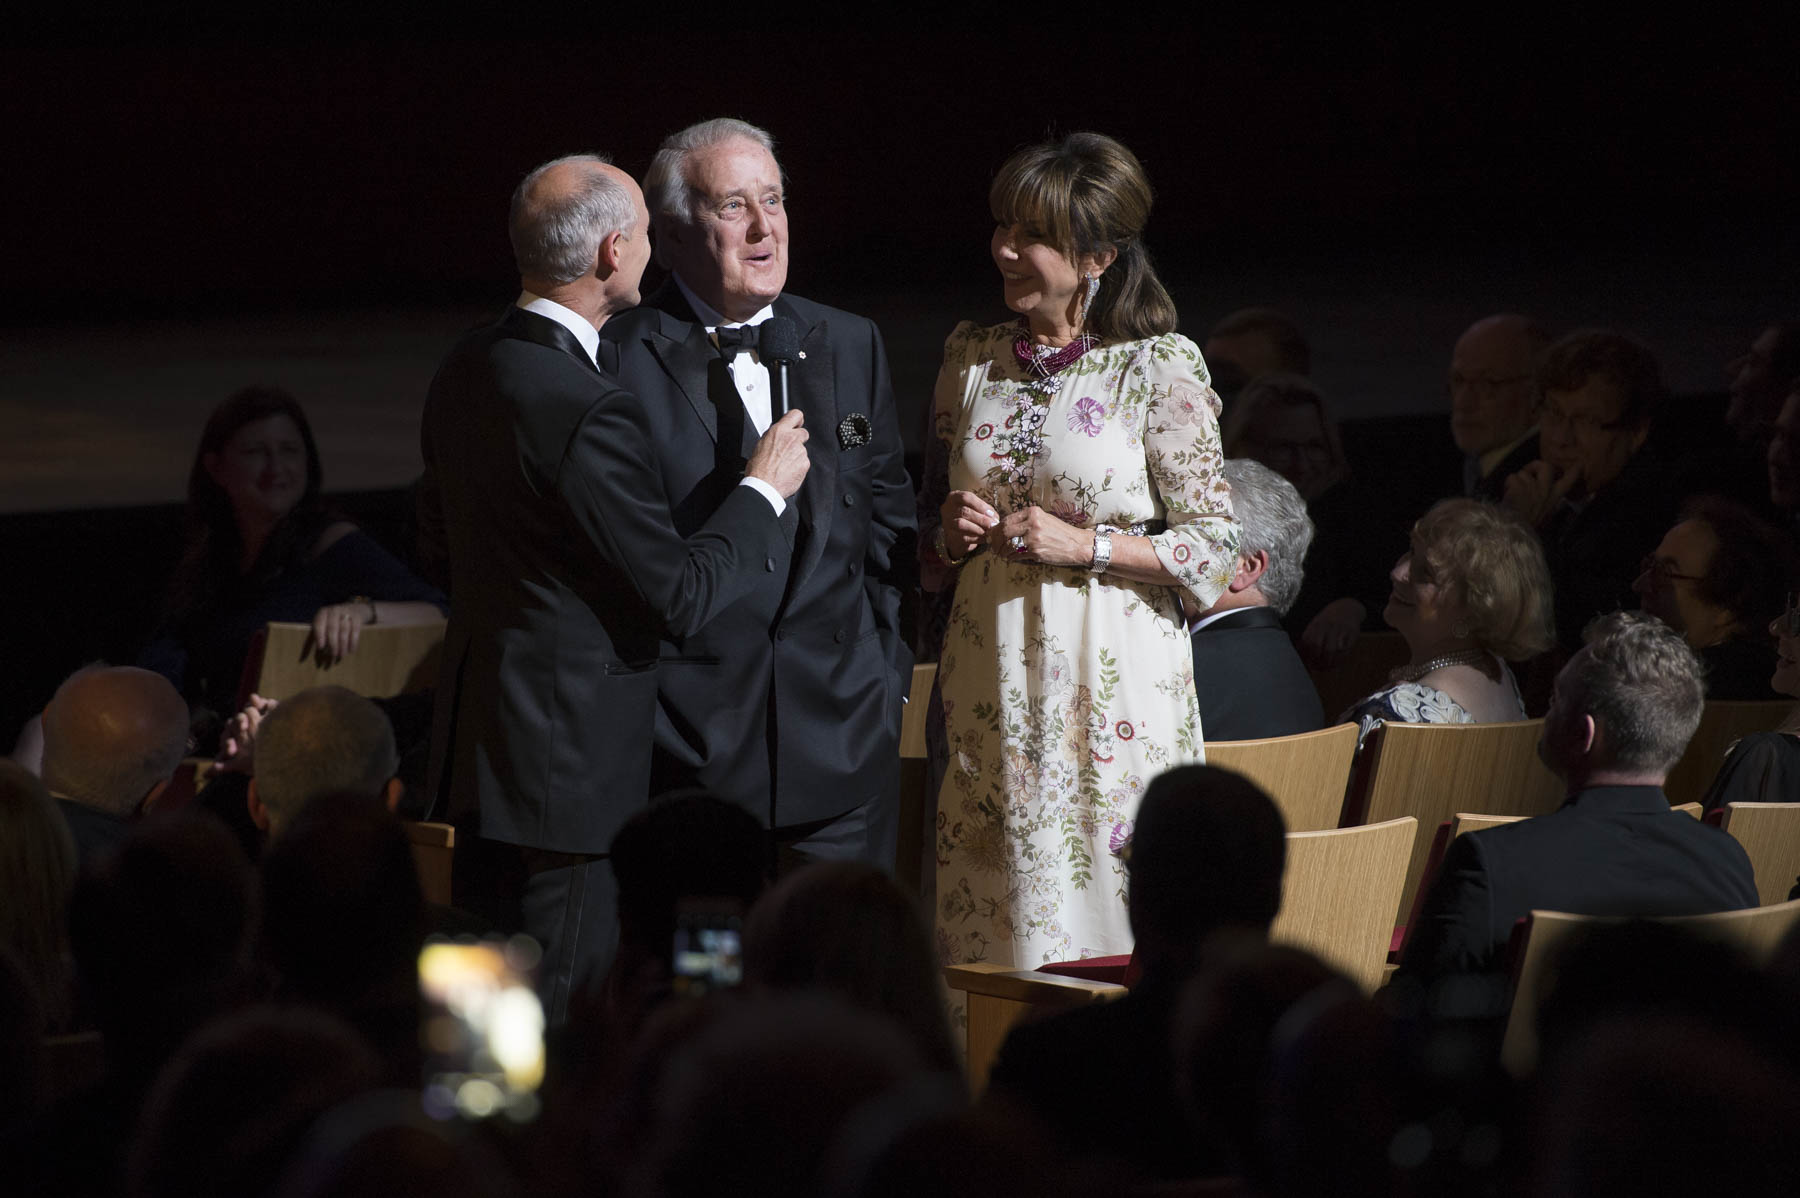 Former prime minister Brian Mulroney, accompanied by his wife Mila spoke about the young Michael Bublé.